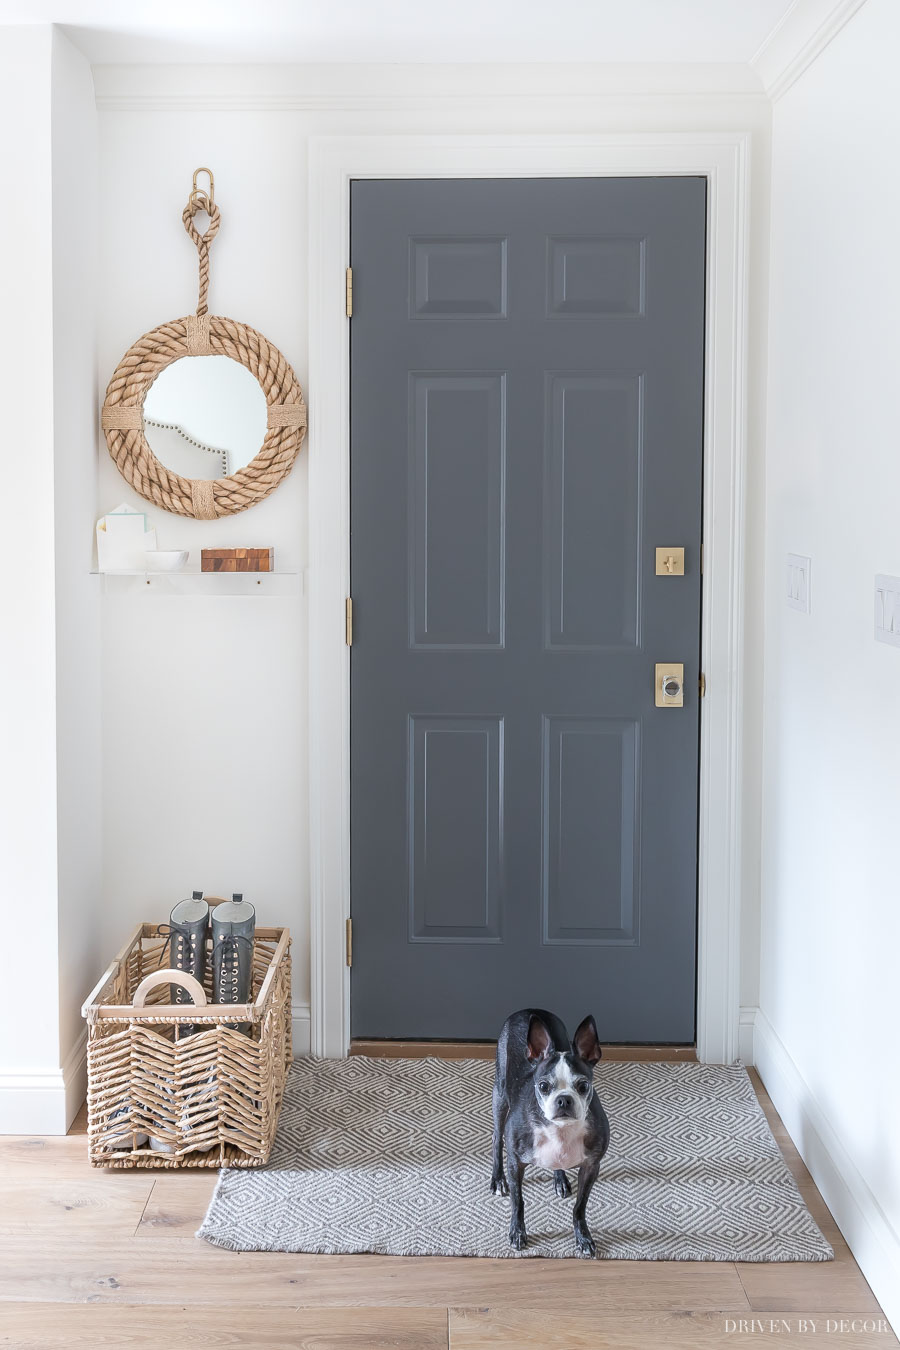 Such a cute small space entryway with rope mirror and shelf, rug, and basket for shoes!